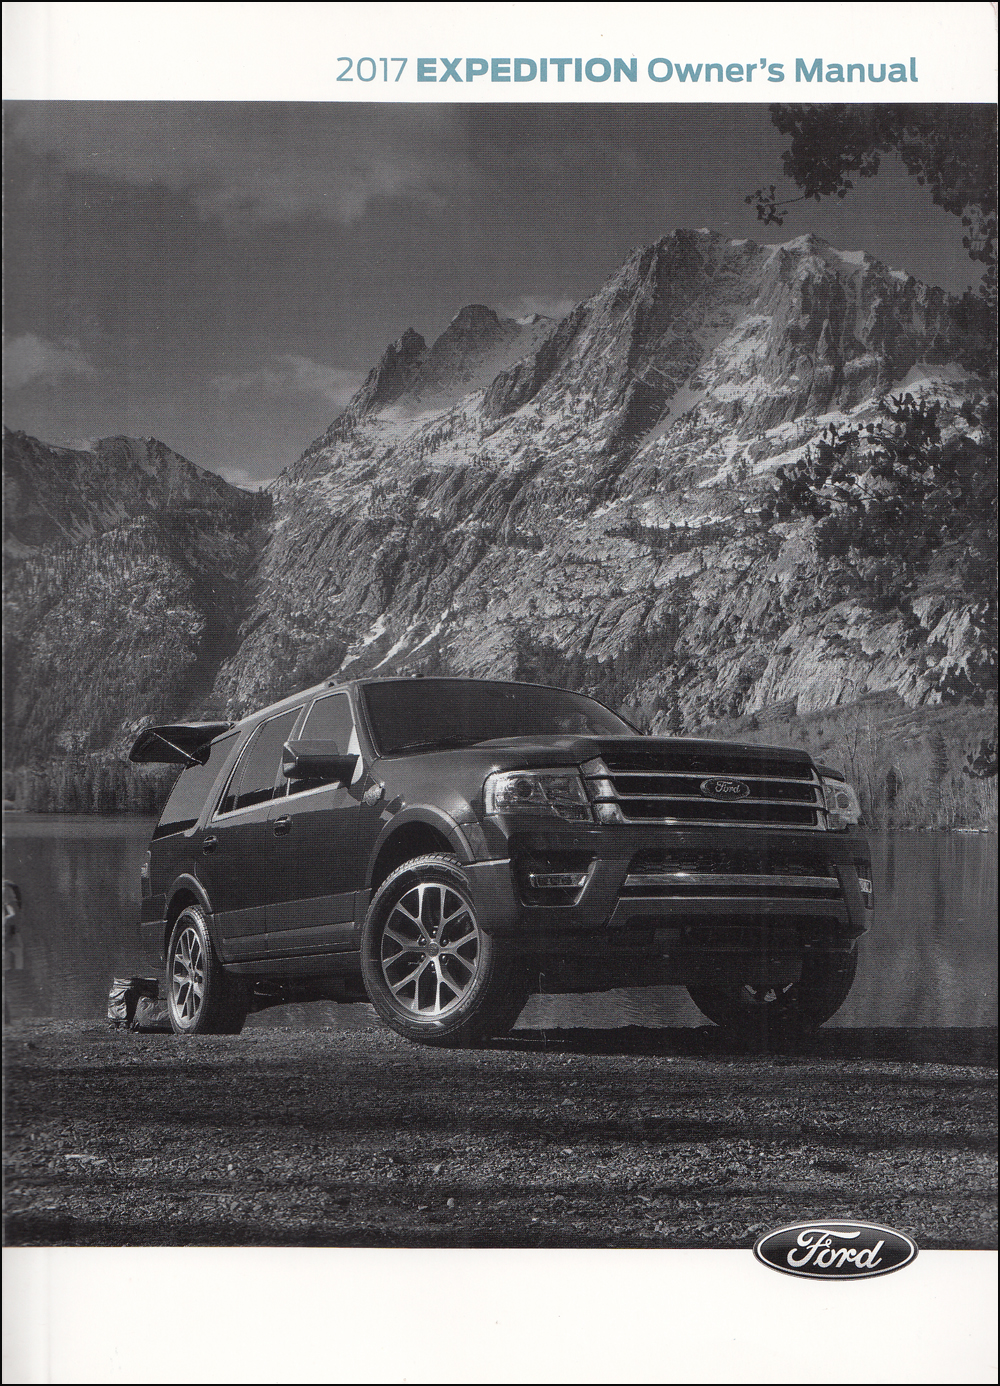 2017 Ford Expedition Repair Shop Manual On Cd